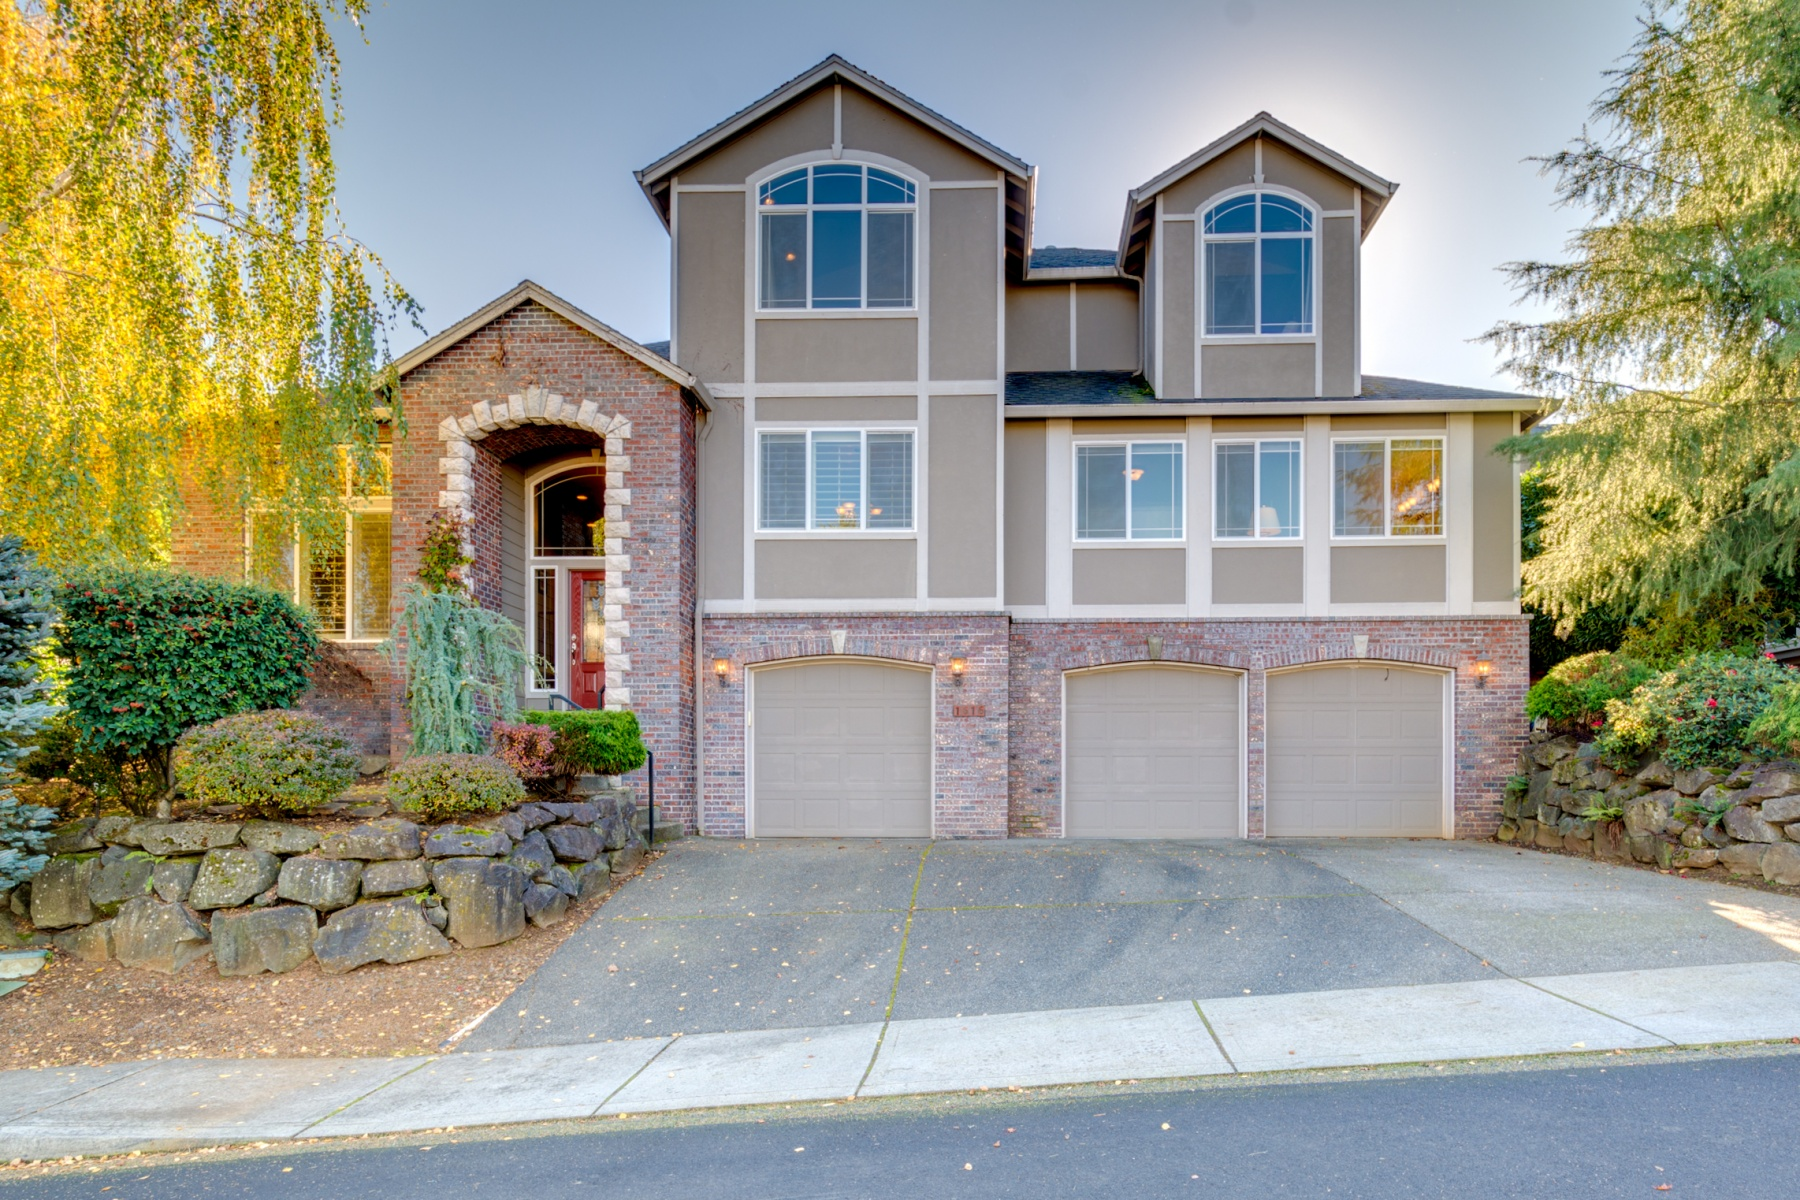 Single Family Home for Sale at On the Hill in Camas 1616 NW 38TH Ave Camas, Washington 98607 United States